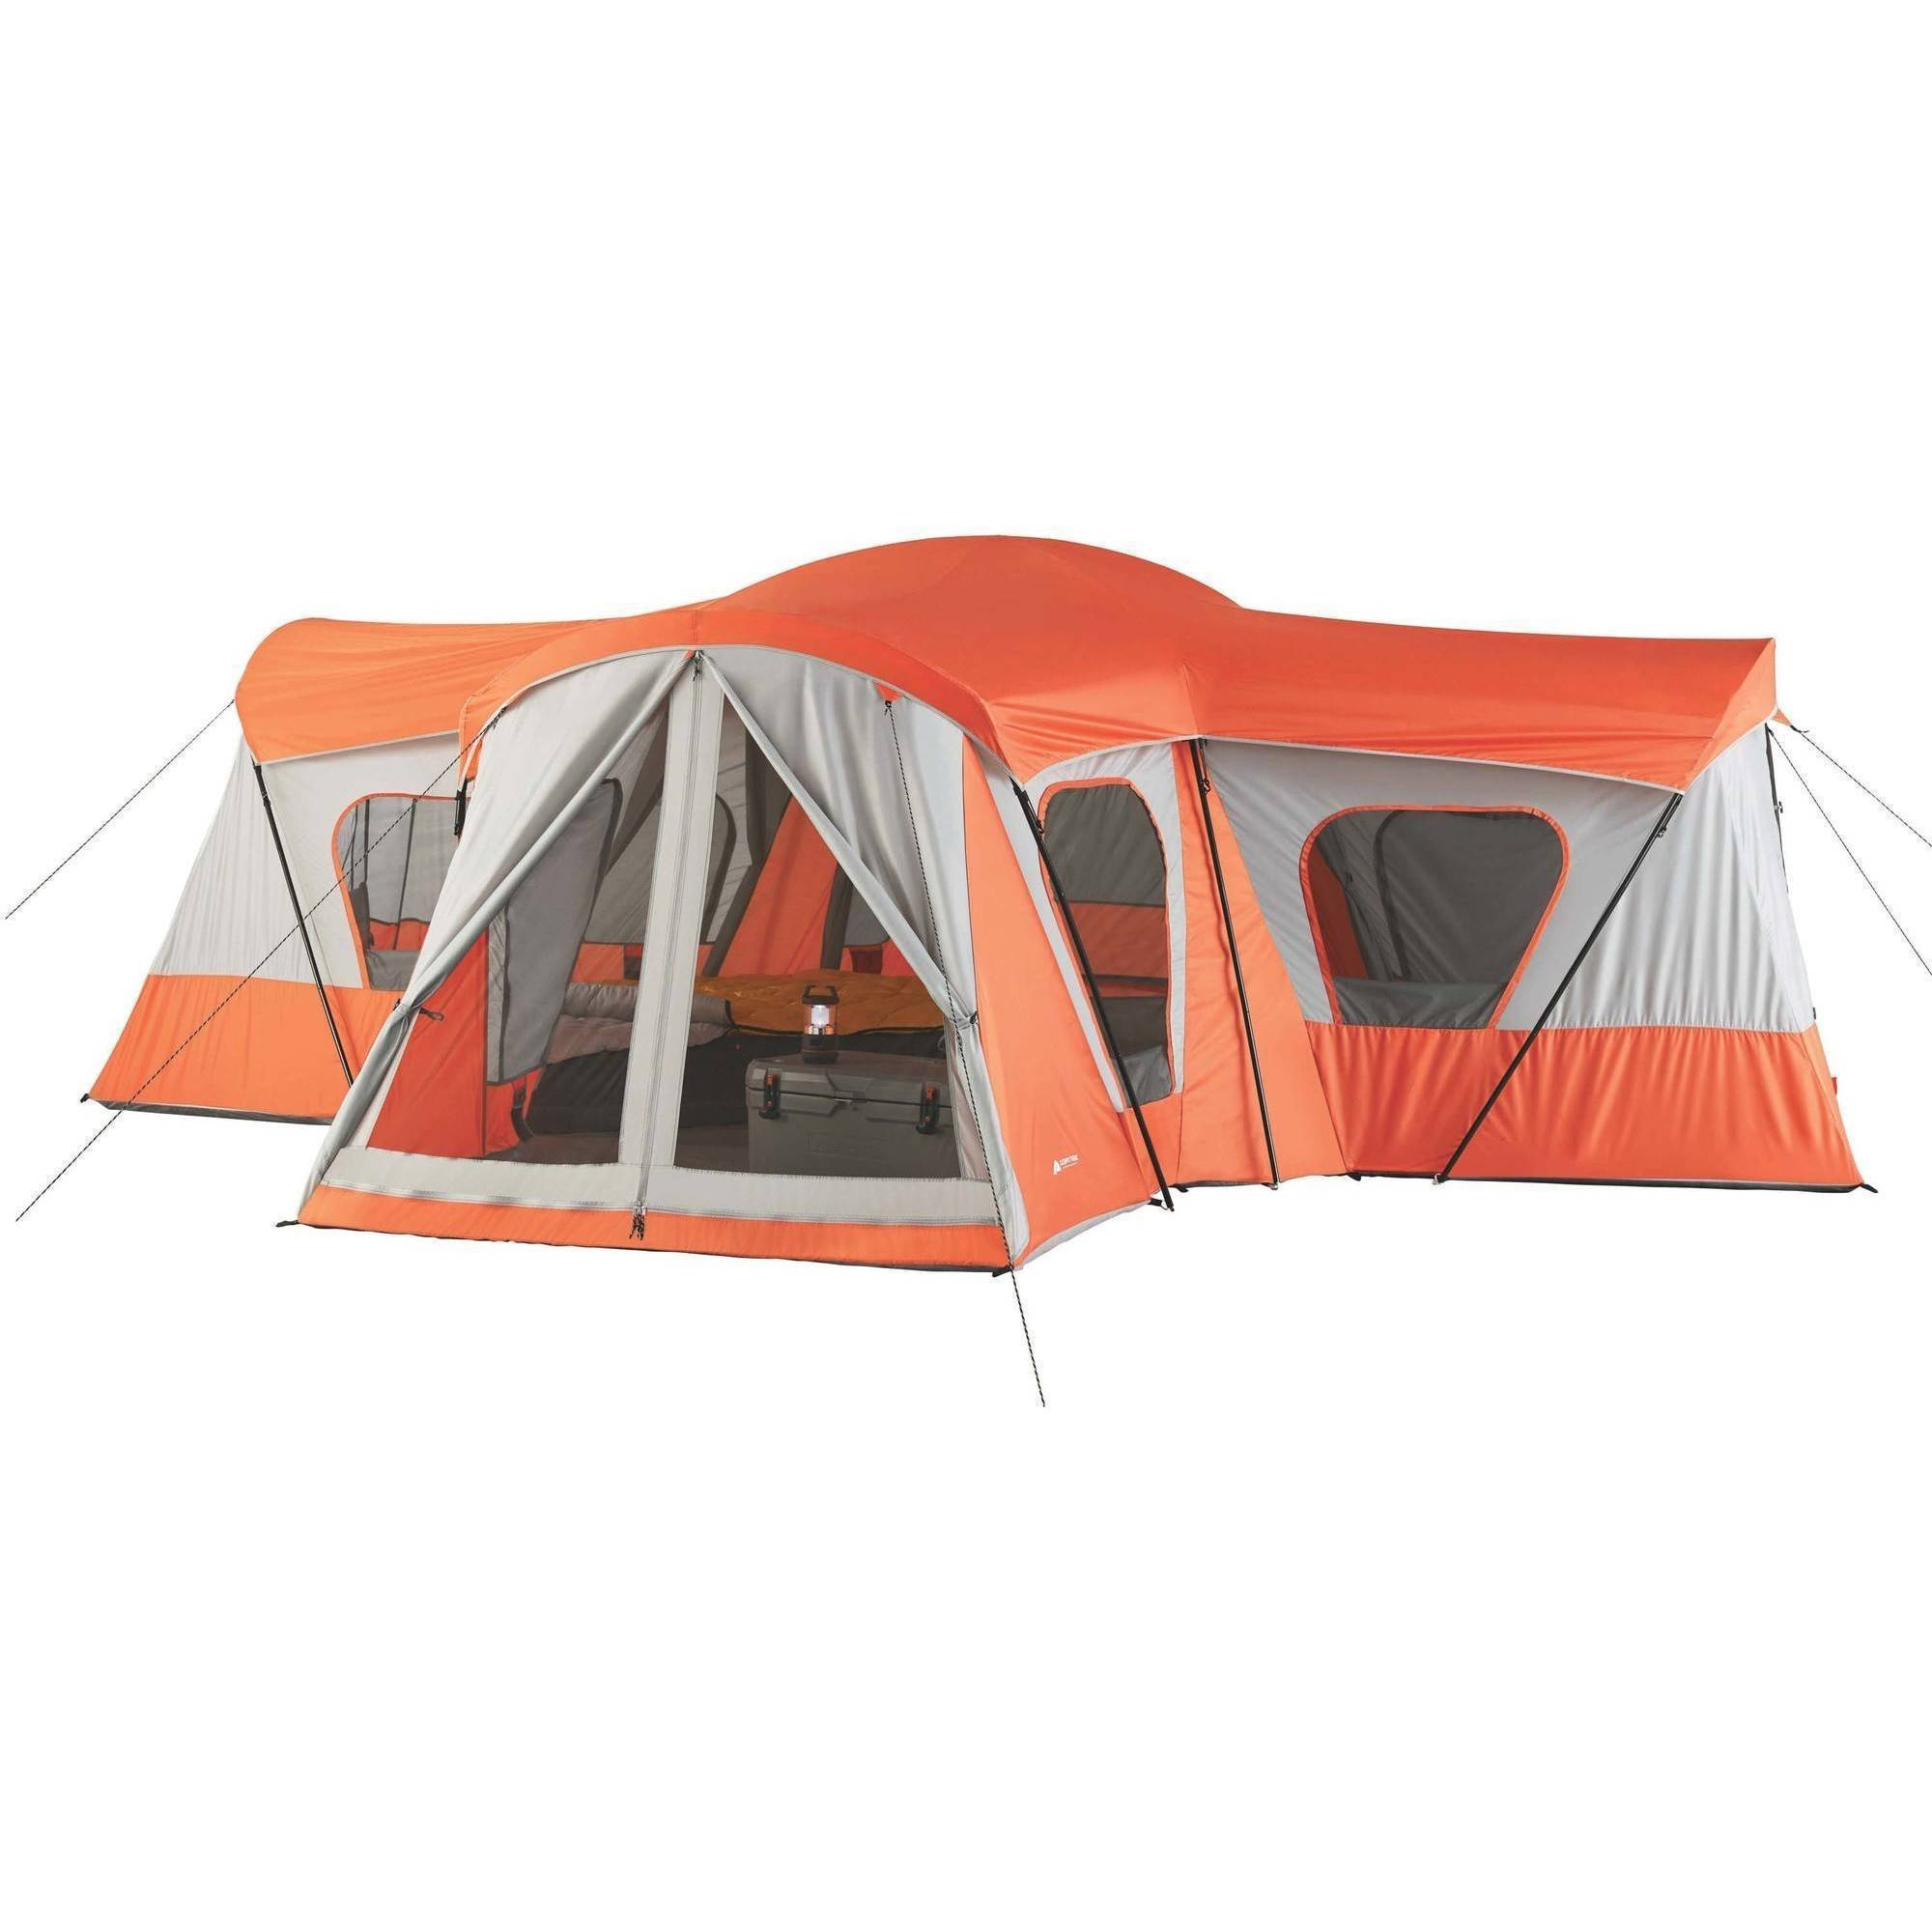 Ozark Trail 14-Person 4-Room Base Camp Tent by CAMPEX BD LIMITED